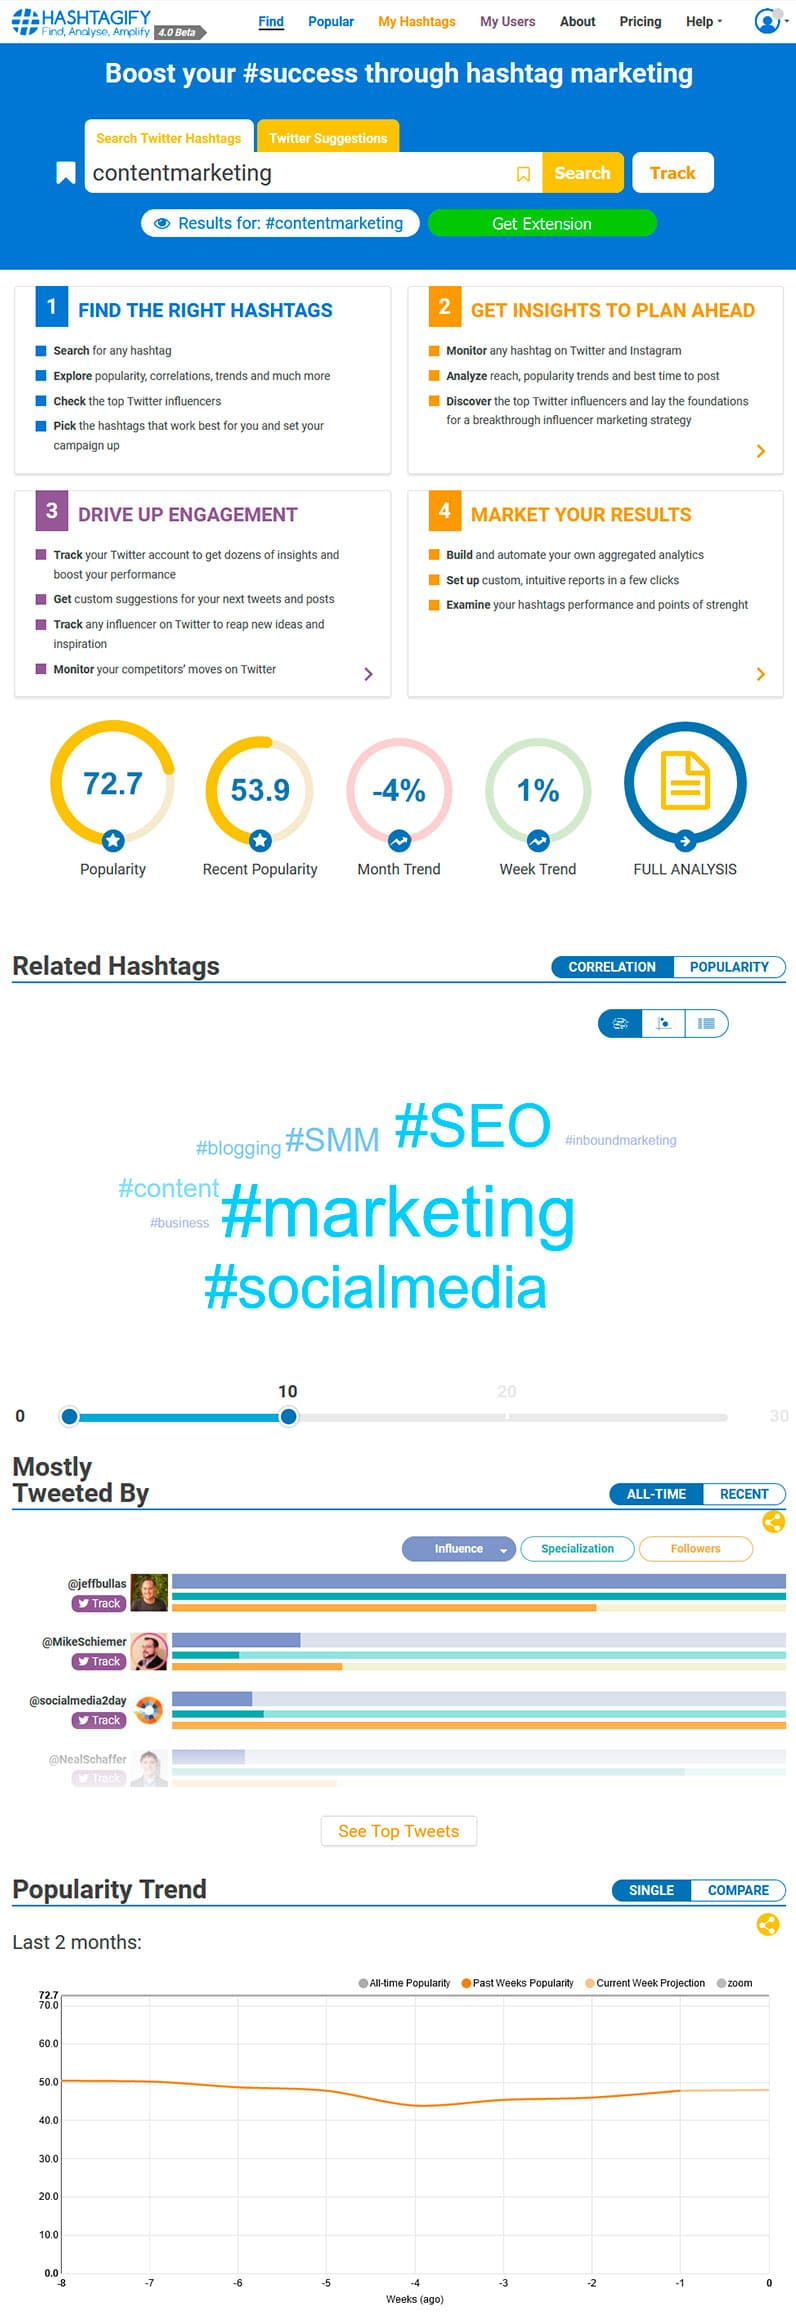 Hashtagify overview for contentmarketing hashtag